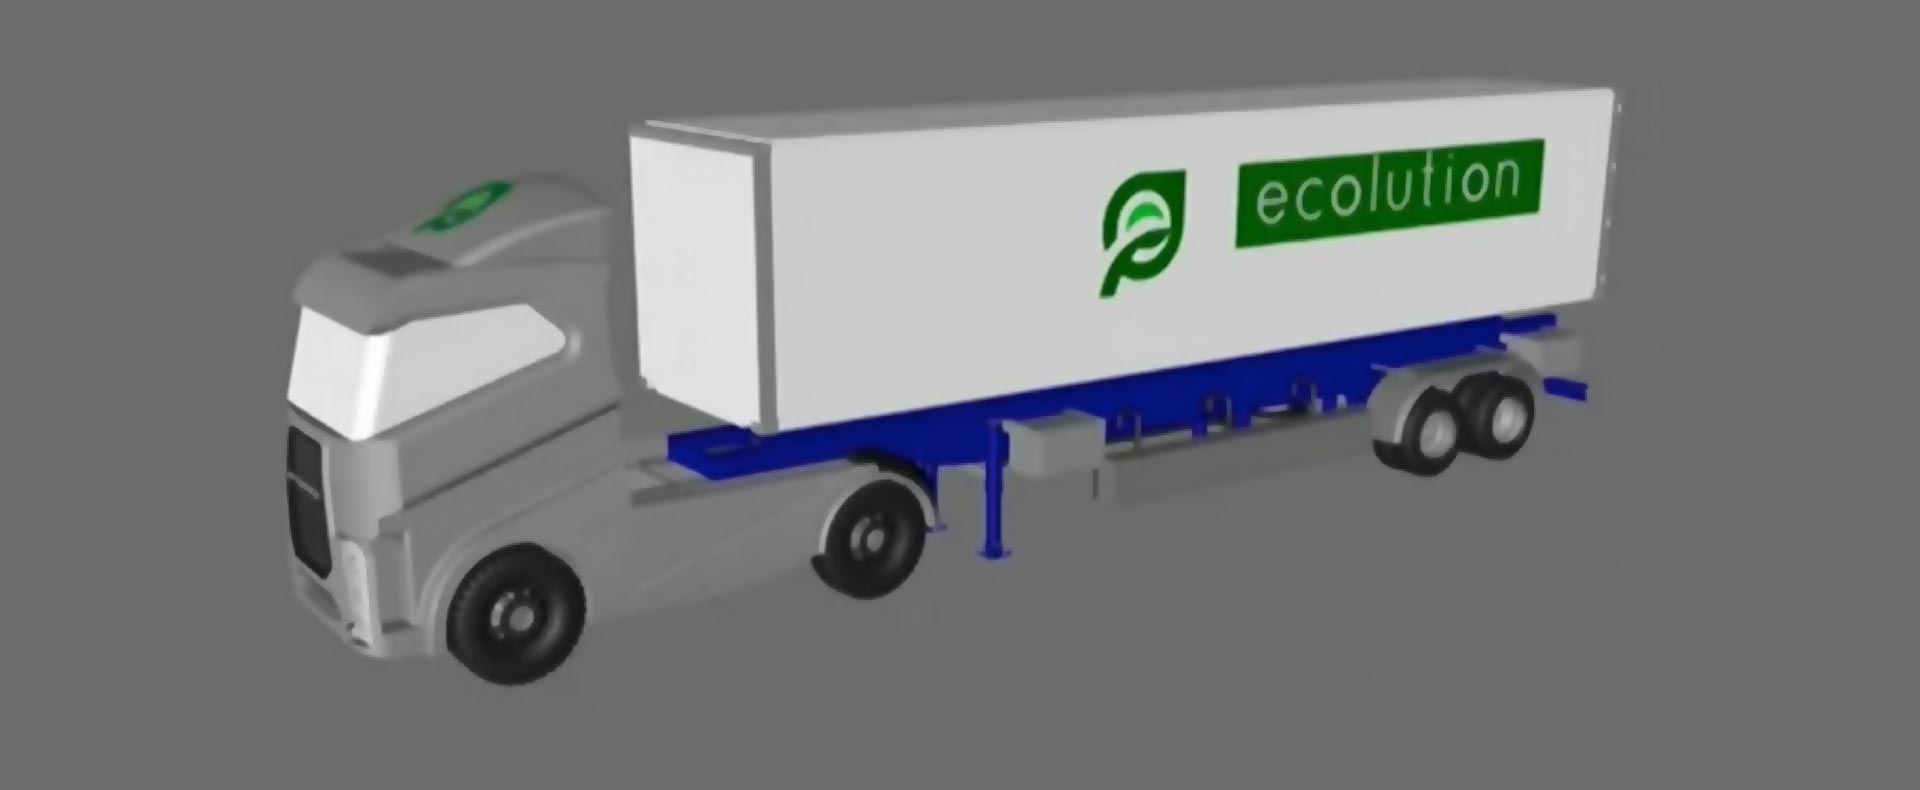 Computer Rendering of Ecolution Truck